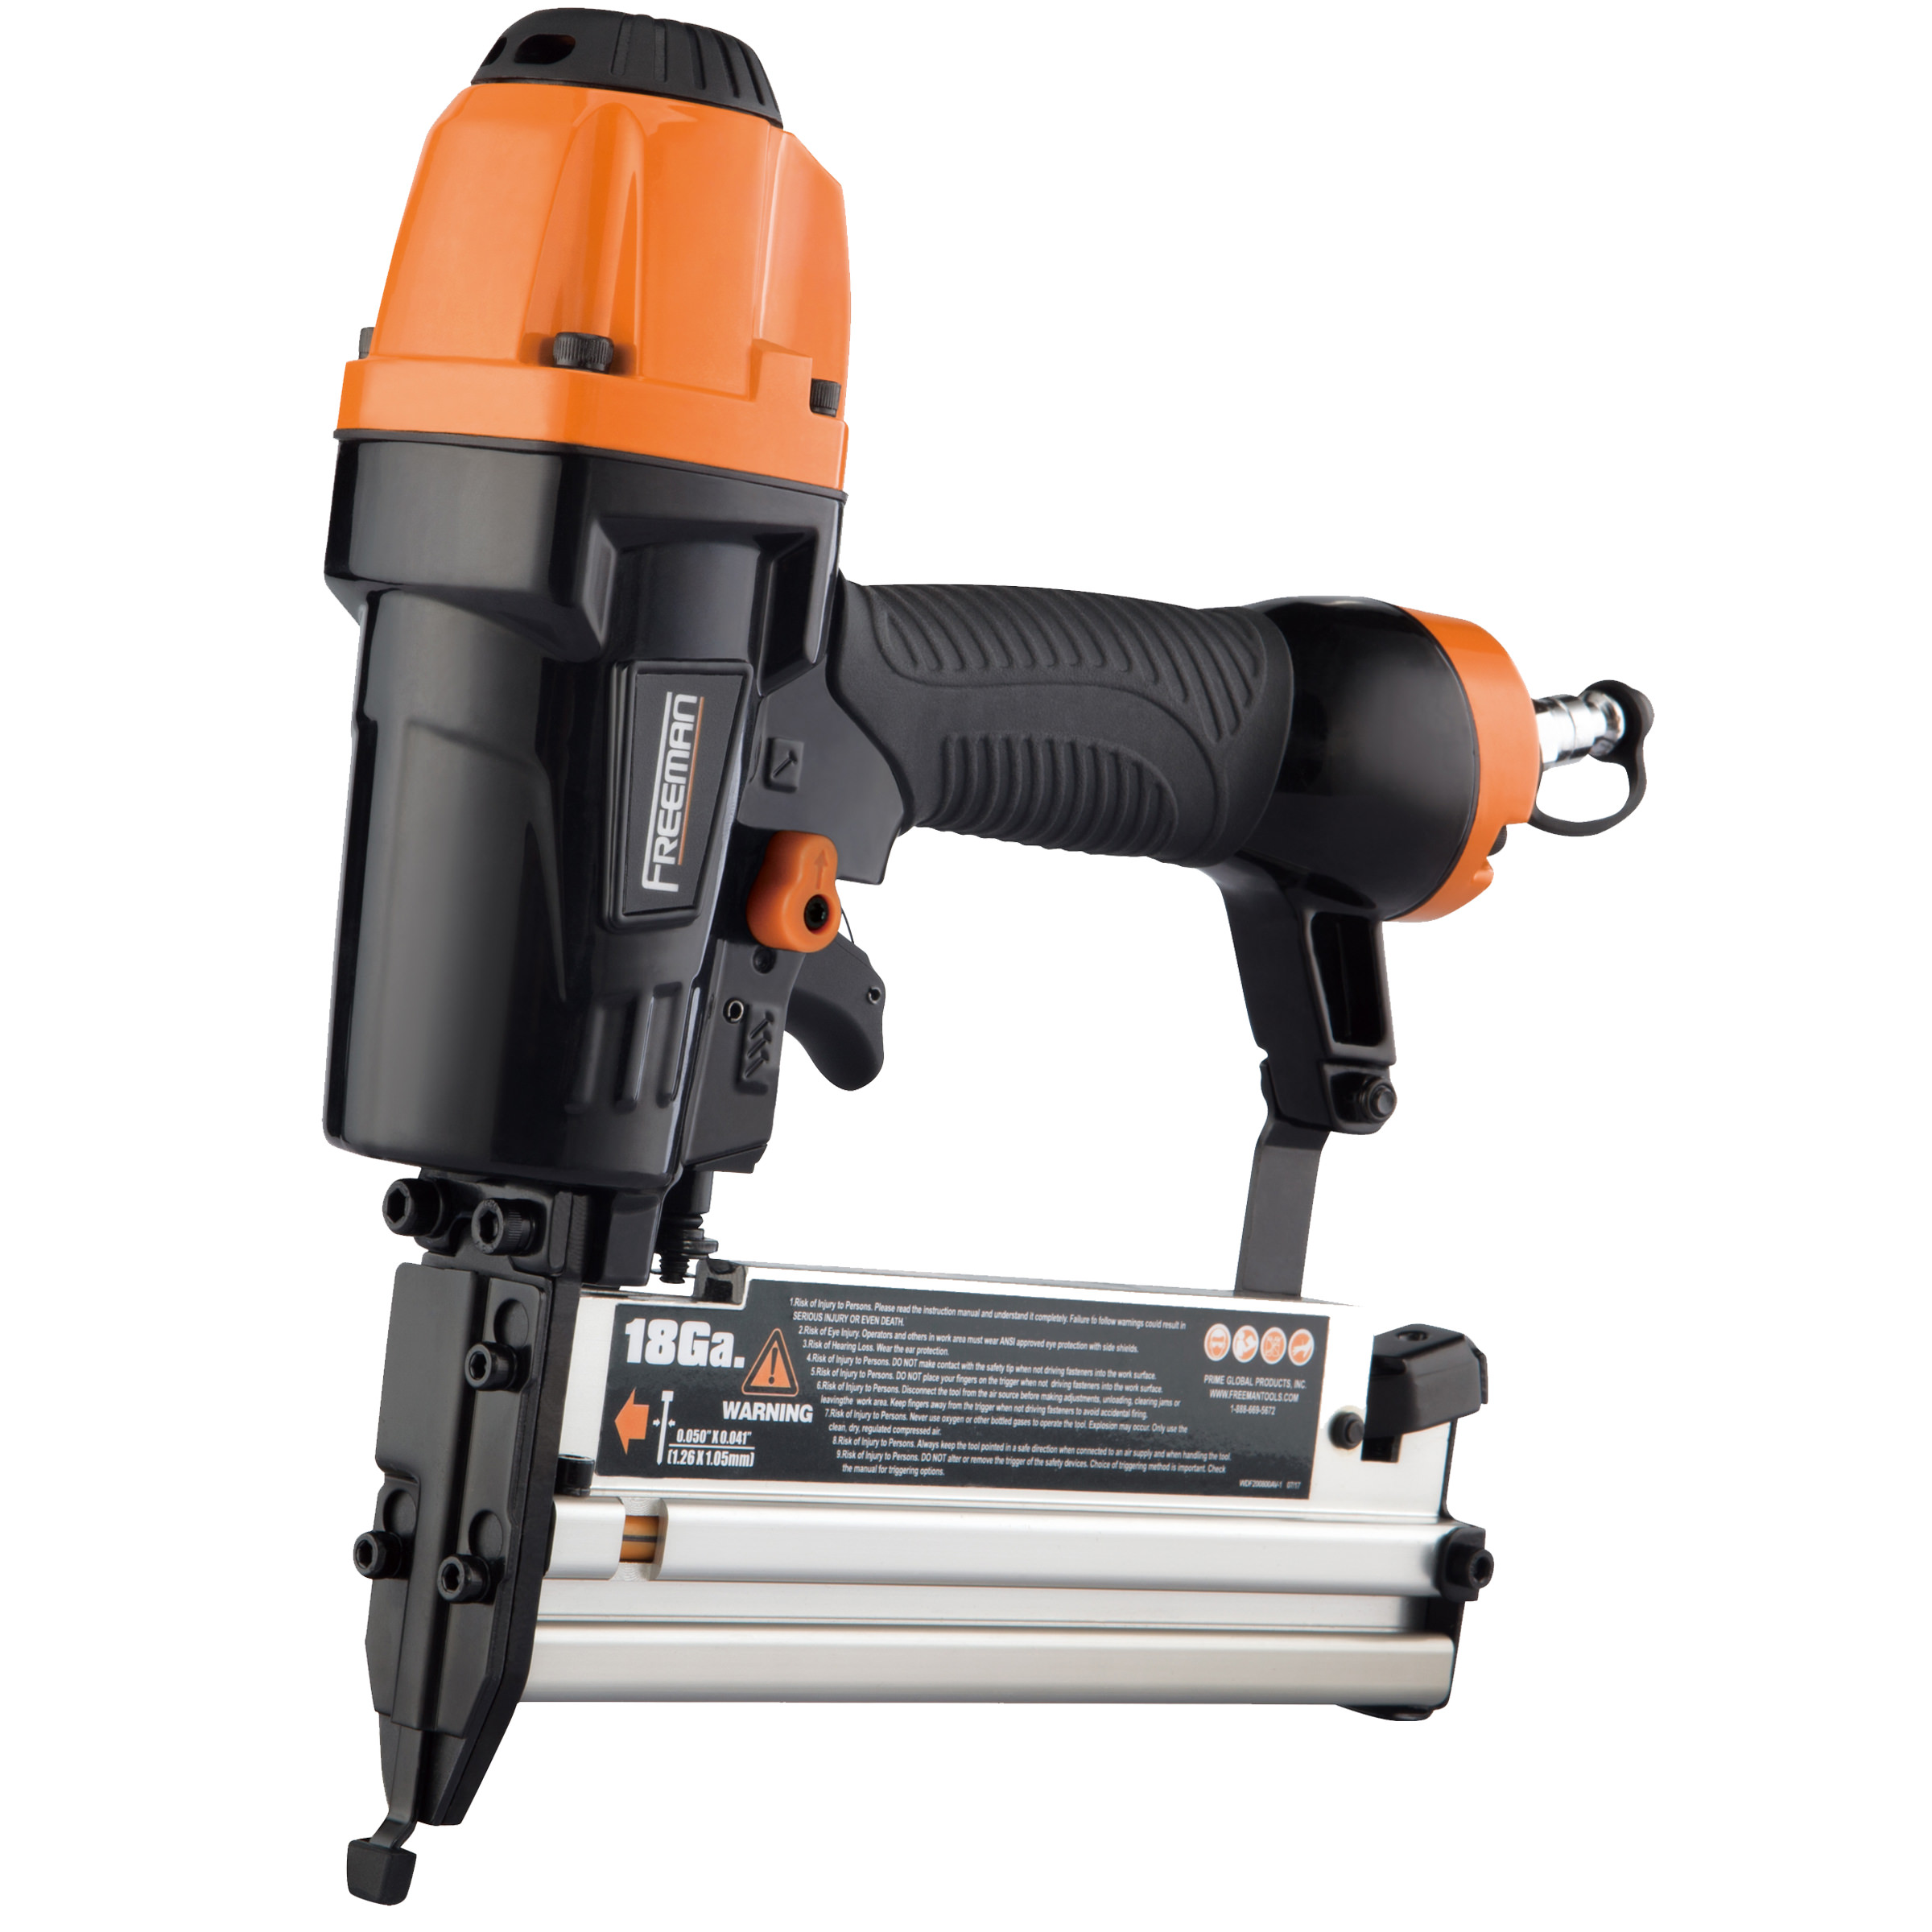 Freeman Pneumatic 3-in-1 16 & 18 Gauge Finish Nailer & Stapler